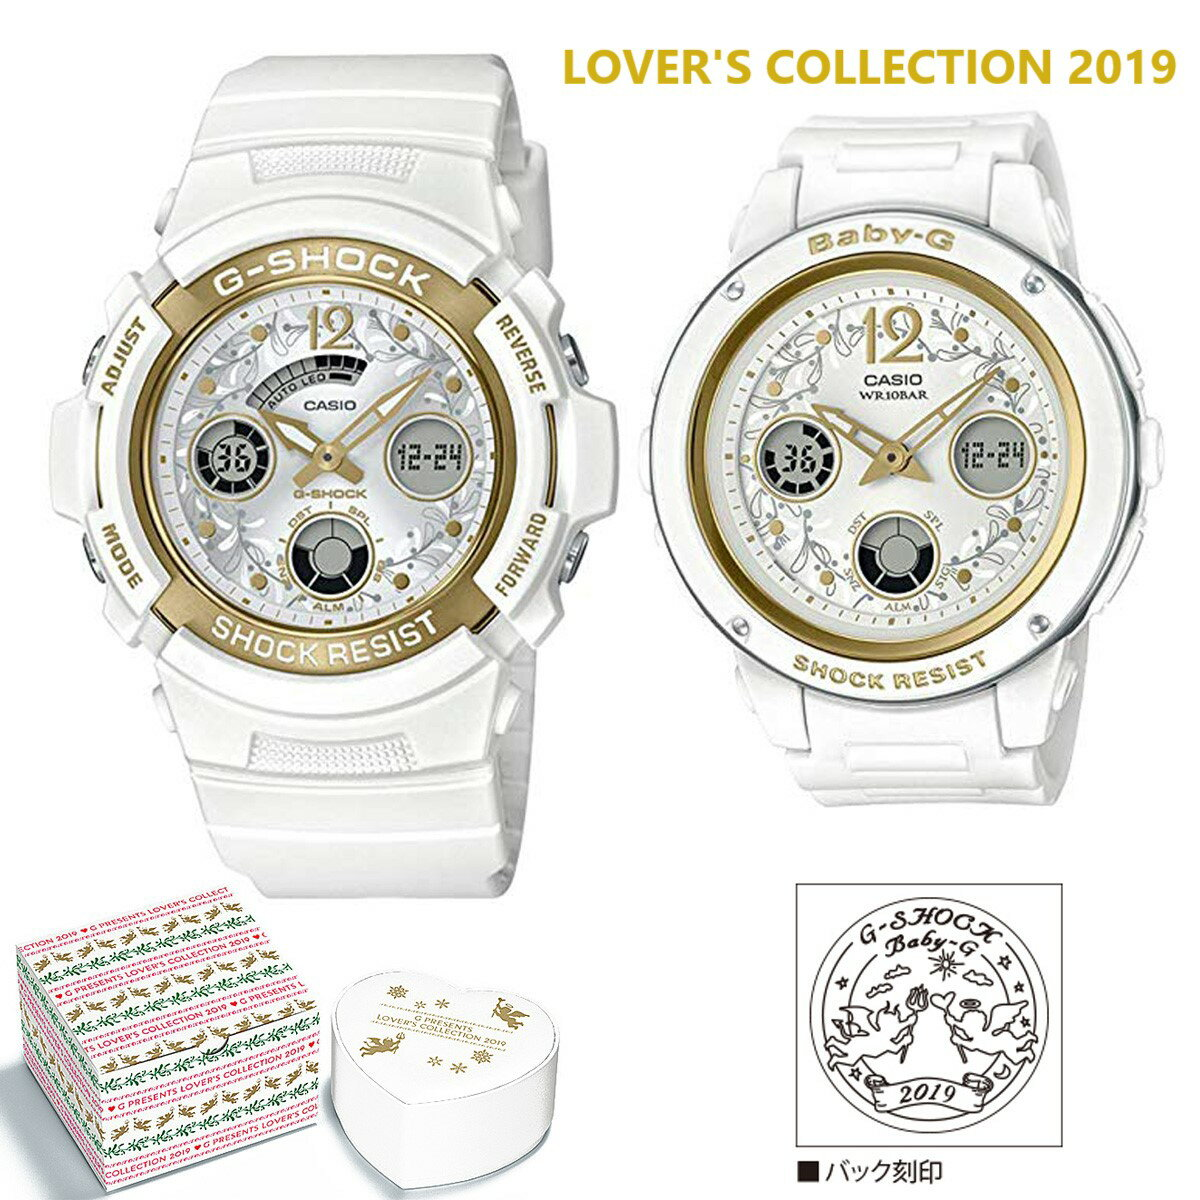 腕時計, ペアウォッチ  G PRESENTS LOVERS COLLECTION 2019 G-SHOCK BABY-G 2019 LOV-19A-7A 2 CASIO G G